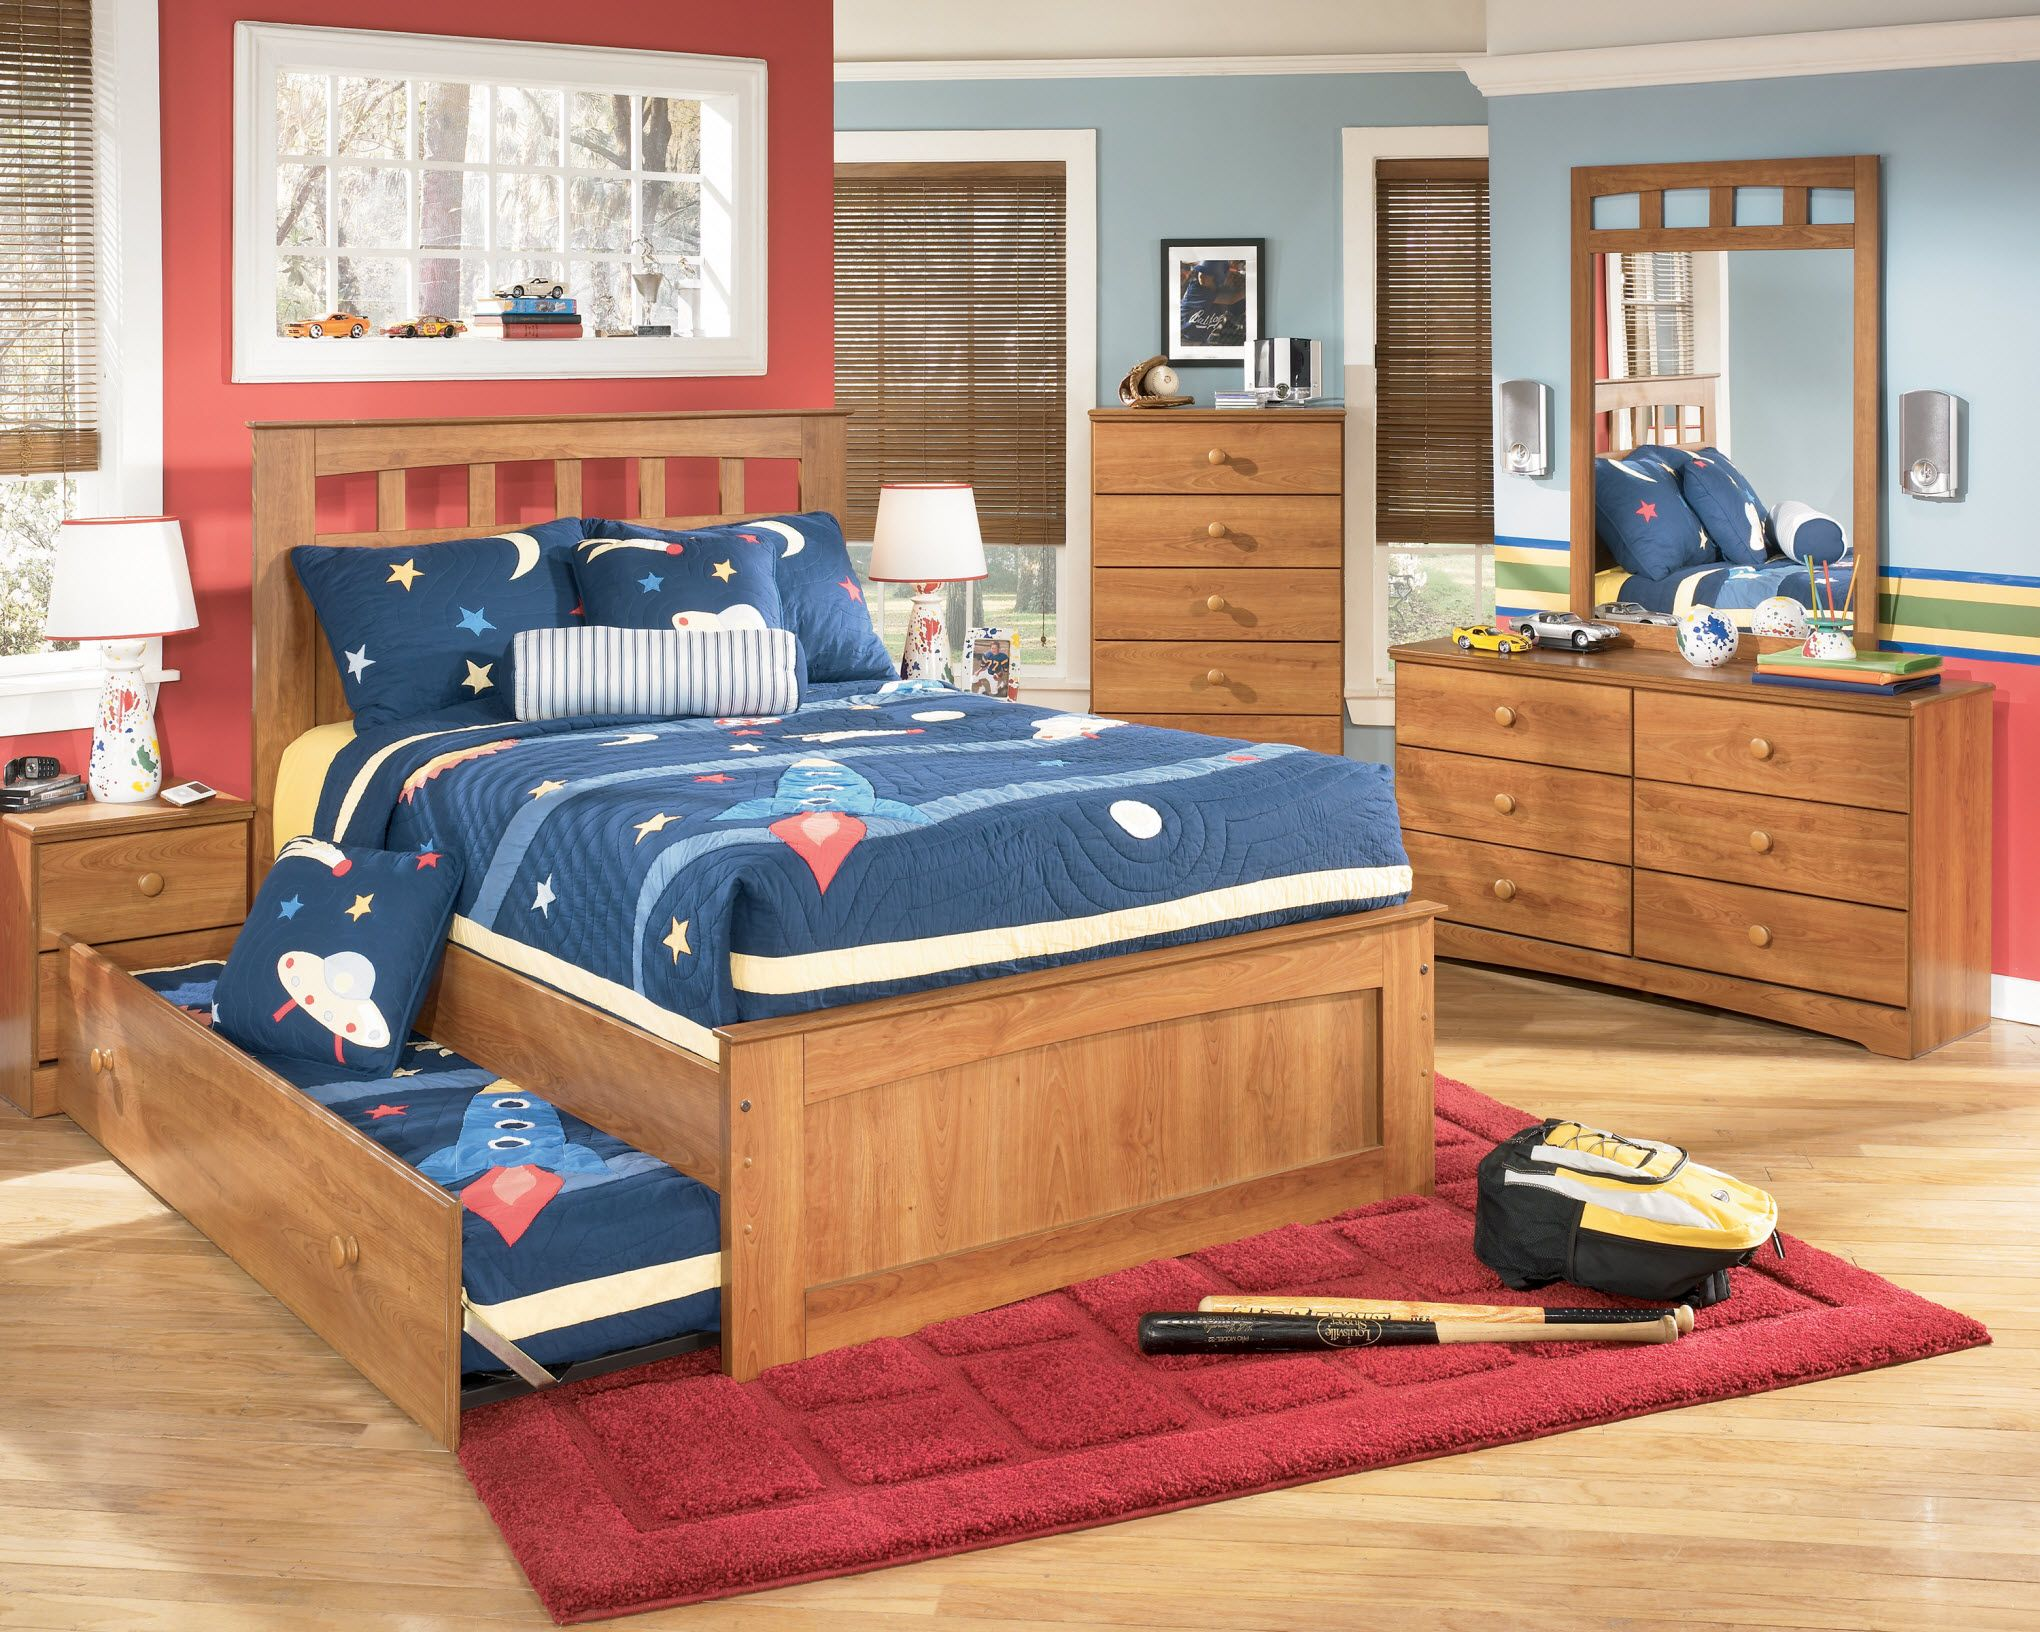 Bedroom Decor Red Fluffy Carpet Tiles With Corner Storage Cabinet   Bedroom Decor Red Fluffy Carpet Tiles With Corner Storage Cabinet Tall Also  Floor Laminate Colours And   Boys Bedroom SetsCool  . Boys Bedroom Furniture Sets. Home Design Ideas